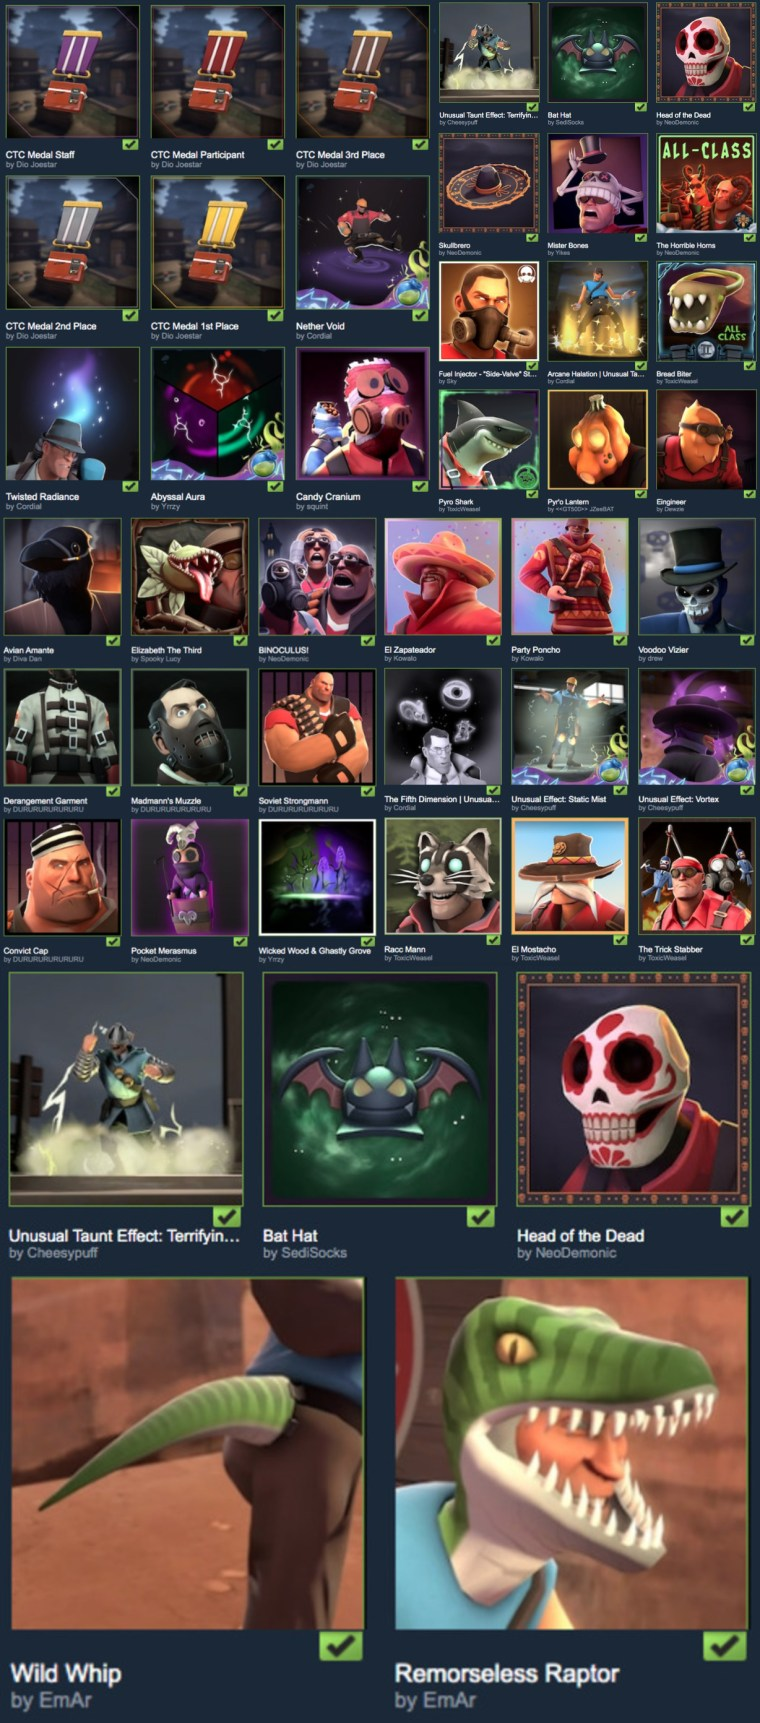 Tf2 Halloween 2020 Hats Team Fortress 2 Has A Halloween Event That's Live Now